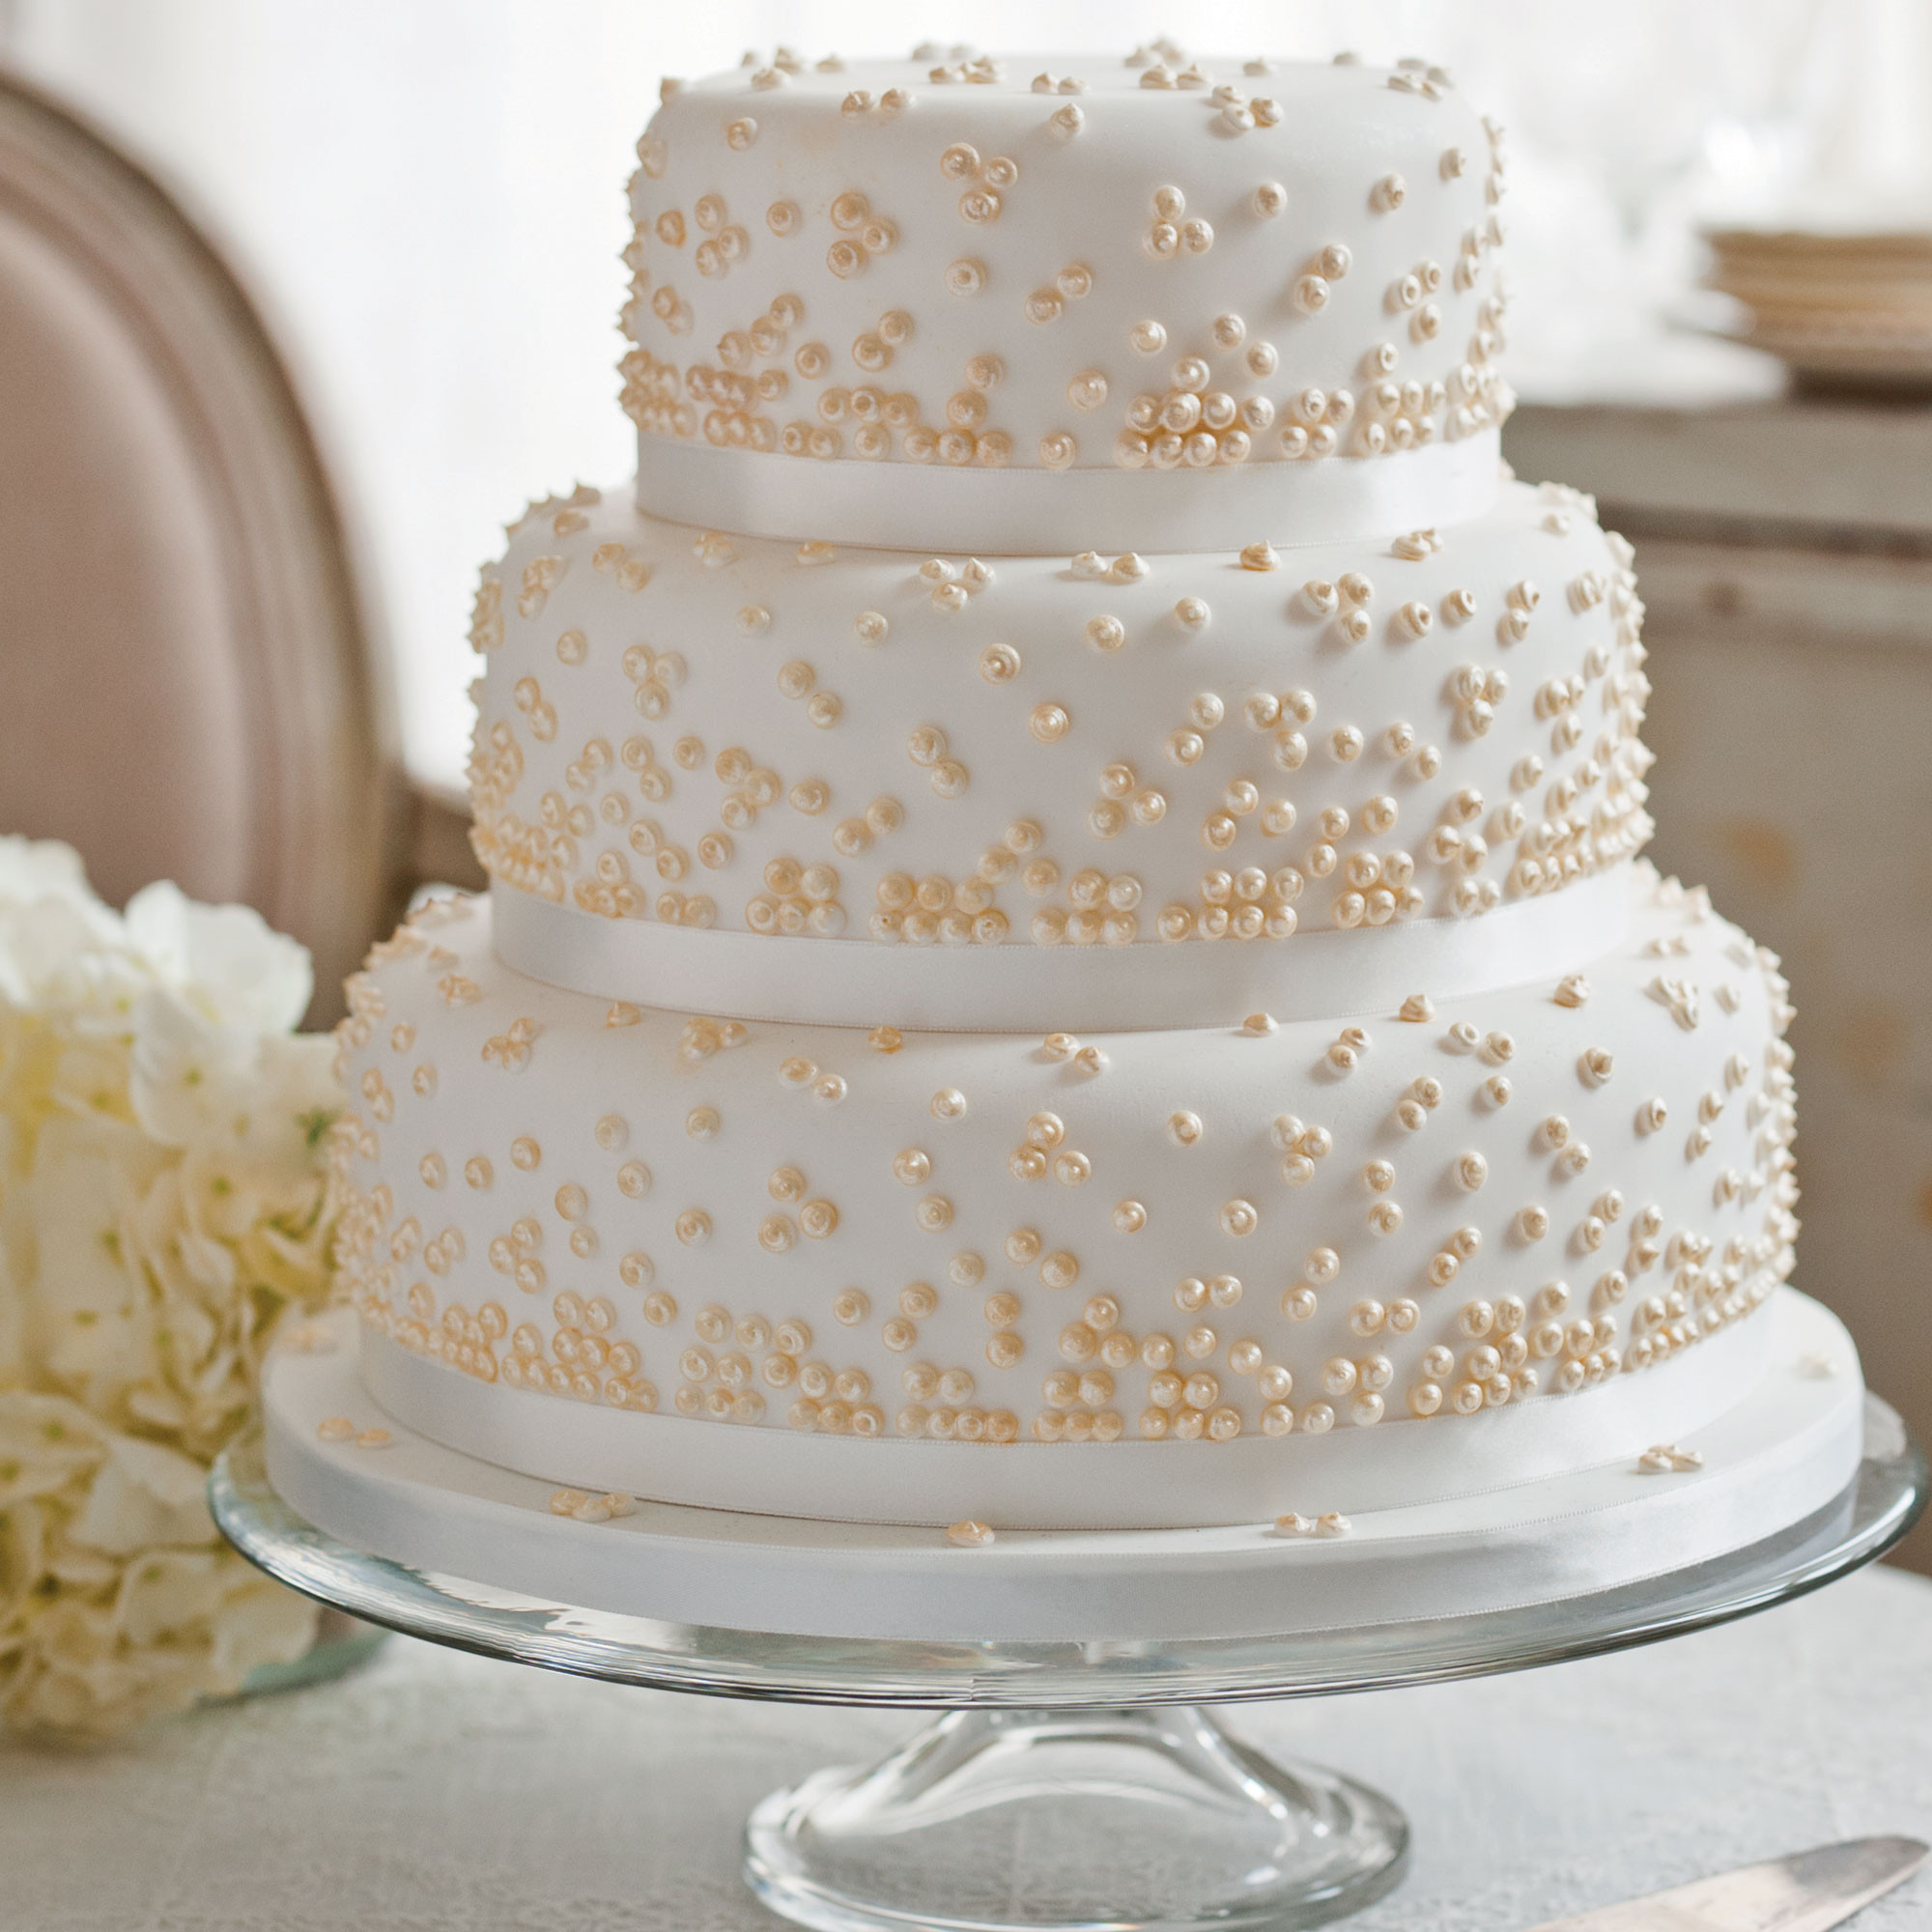 Wedding Cake Recipe 20 Of the Best Ideas for Grace Kelly Wedding Cake Woman and Home